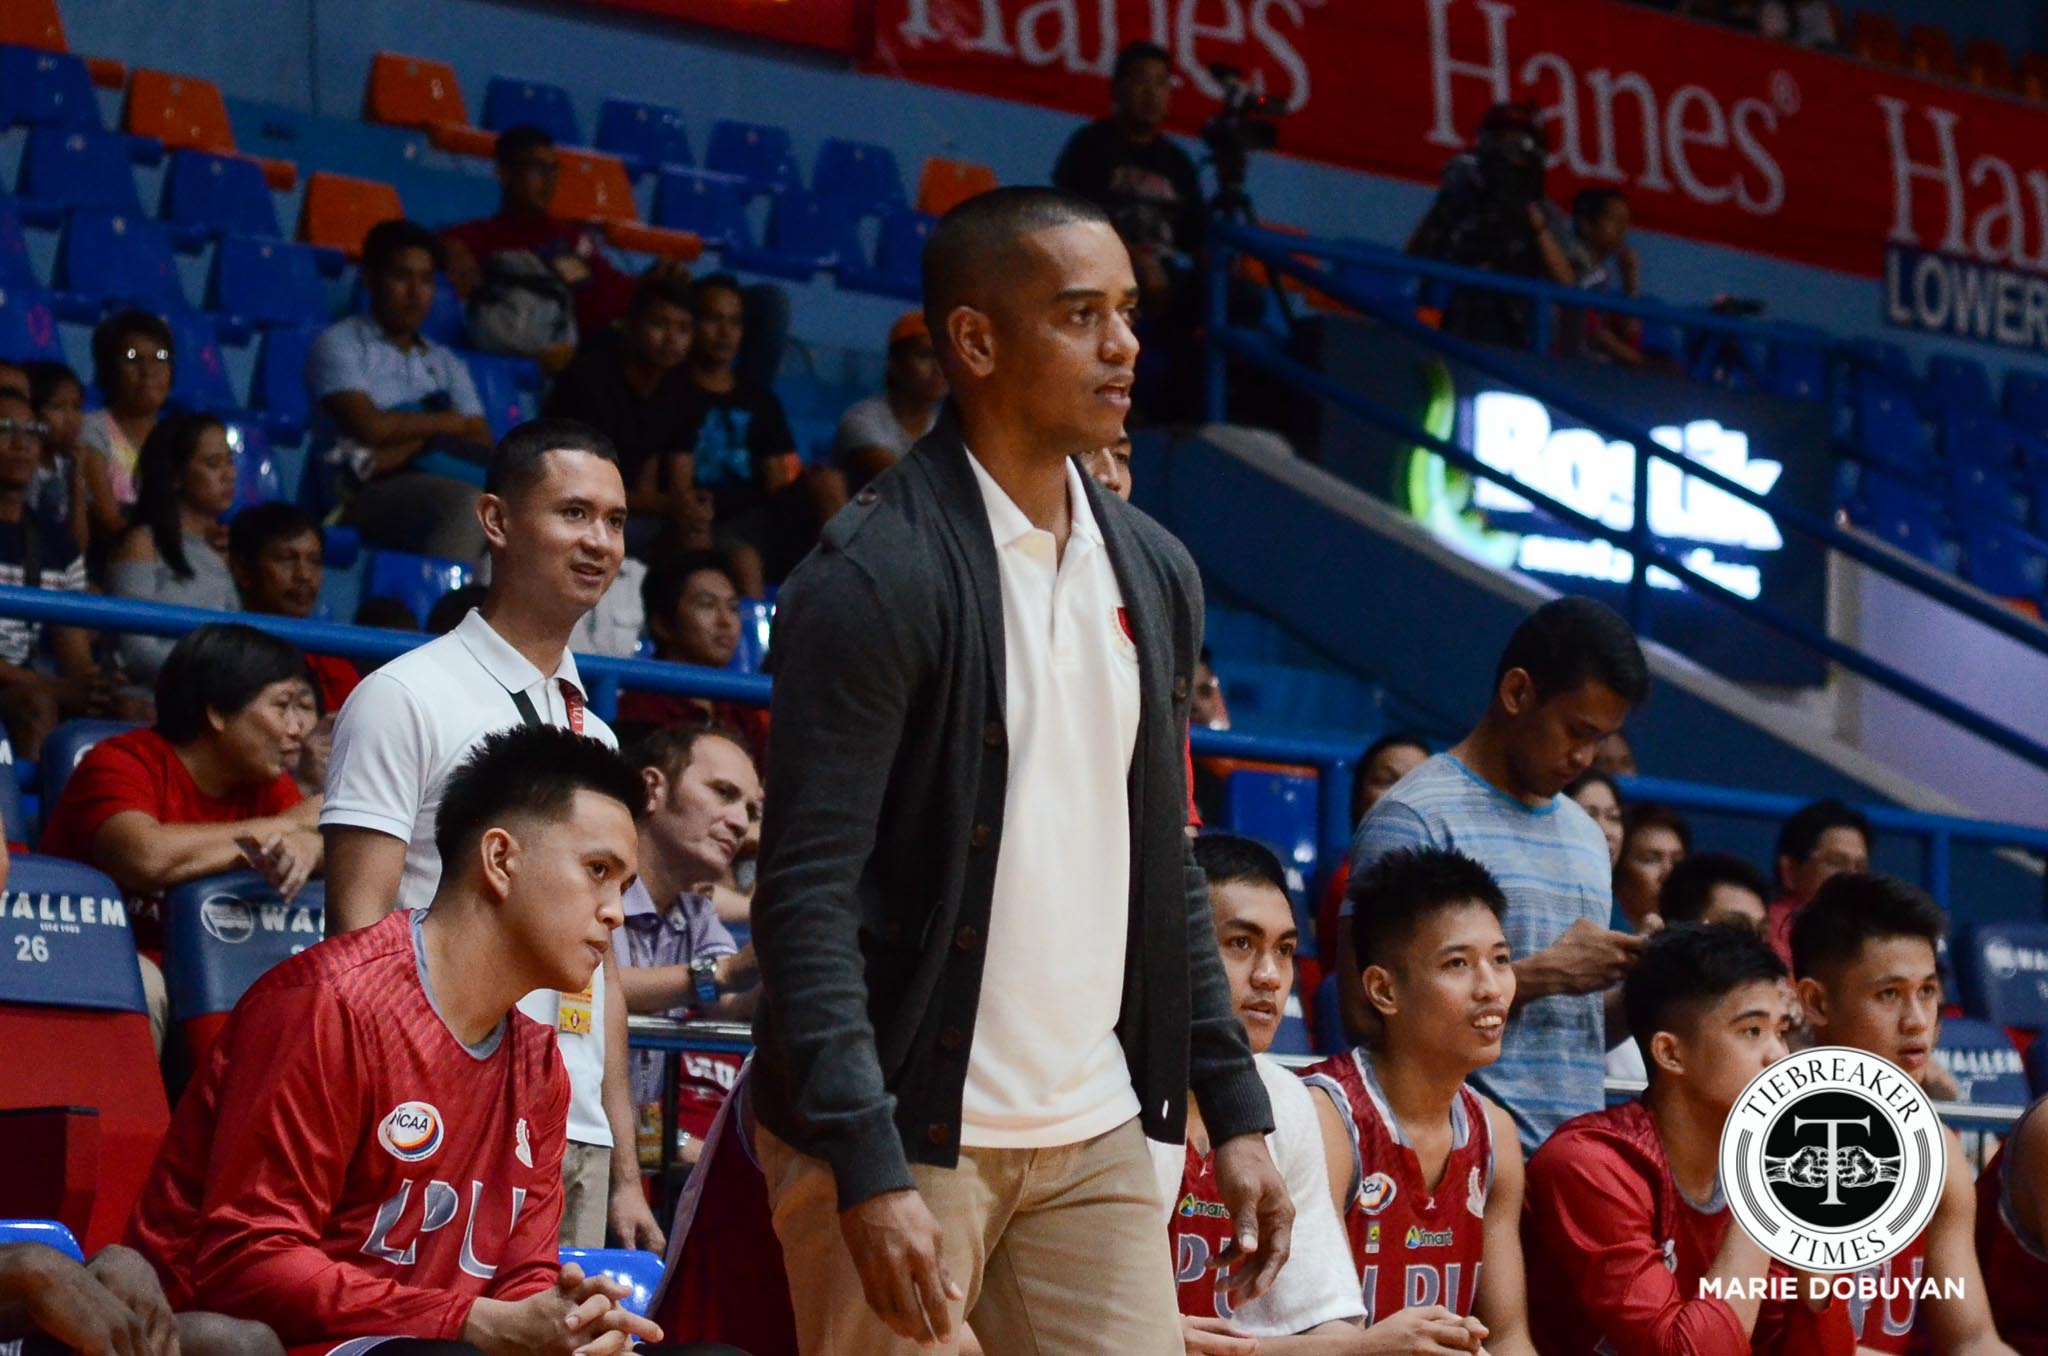 Philippine Sports News - Tiebreaker Times Loss to Saint Benilde a year ago still stings for Lyceum Basketball LPU NCAA News  Topex Robinson NCAA Season 93 Seniors Basketball NCAA Season 93 Lyceum Seniors Basketball